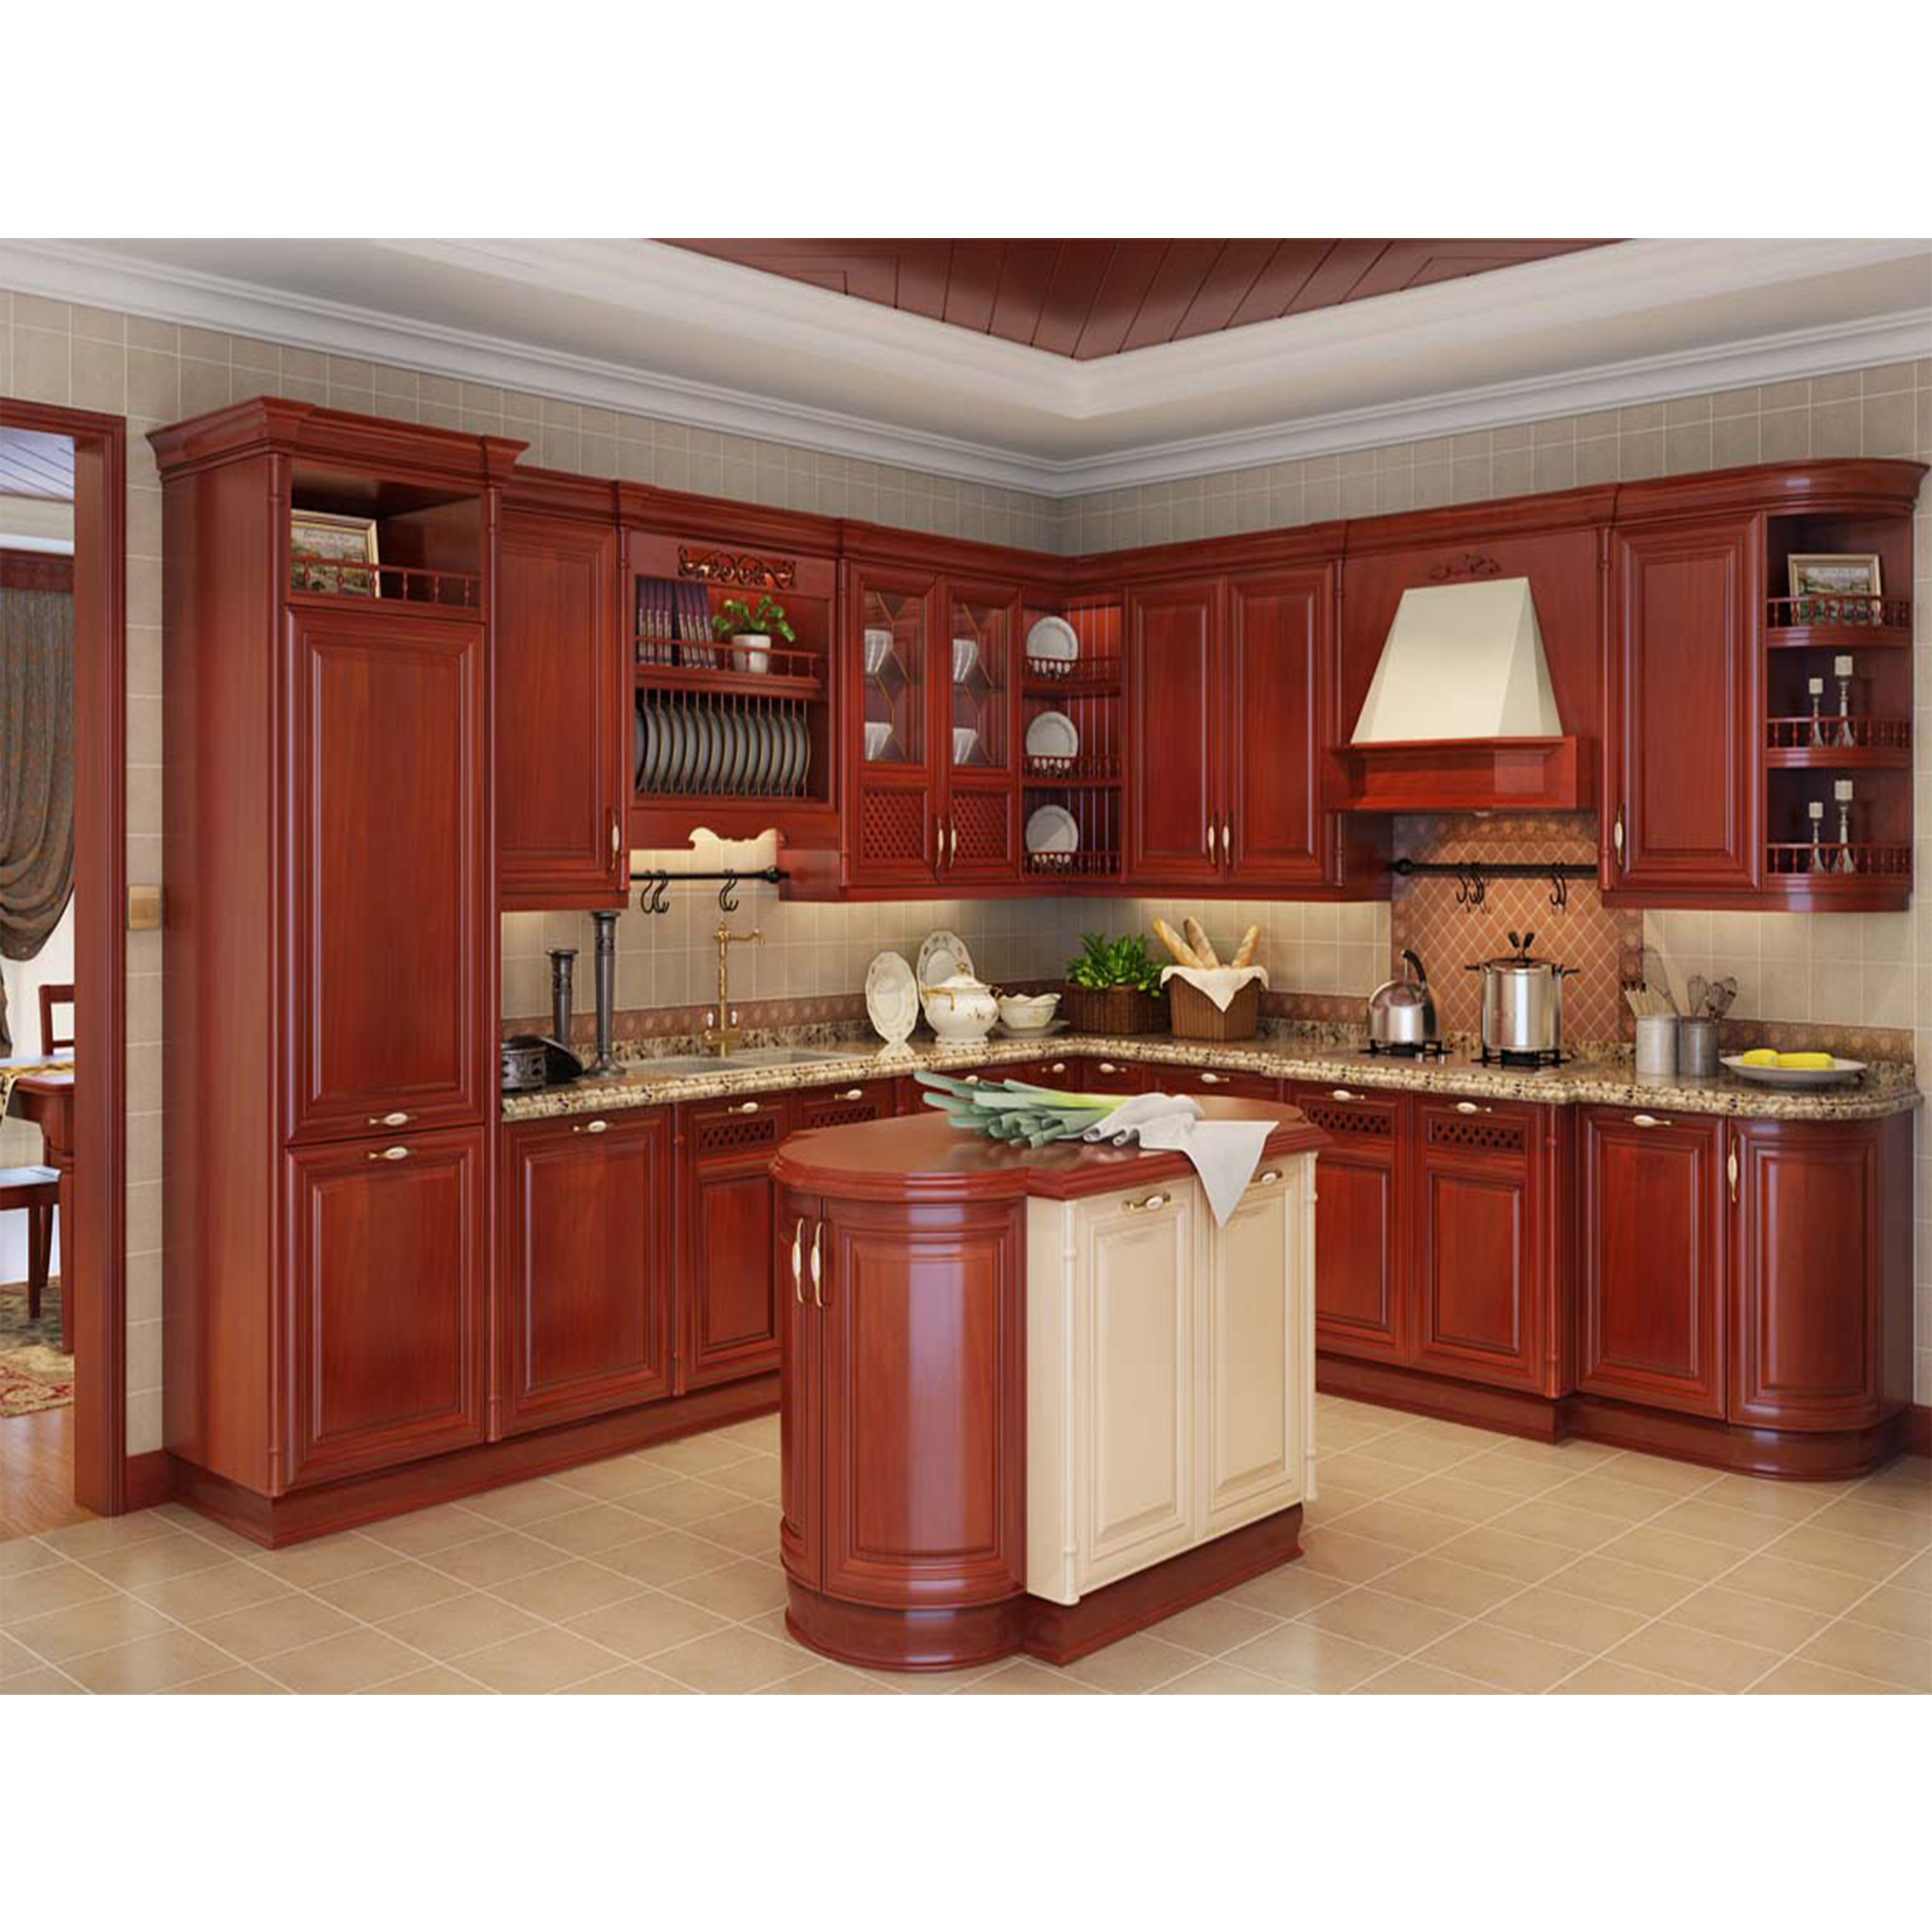 Modular Solid Wood Kitchen Cabinets Fitted Kitchen Design White Alder Solid  Wood Kitchen Cabinet Wooden Cabinets   Buy L shaped Kitchen ...